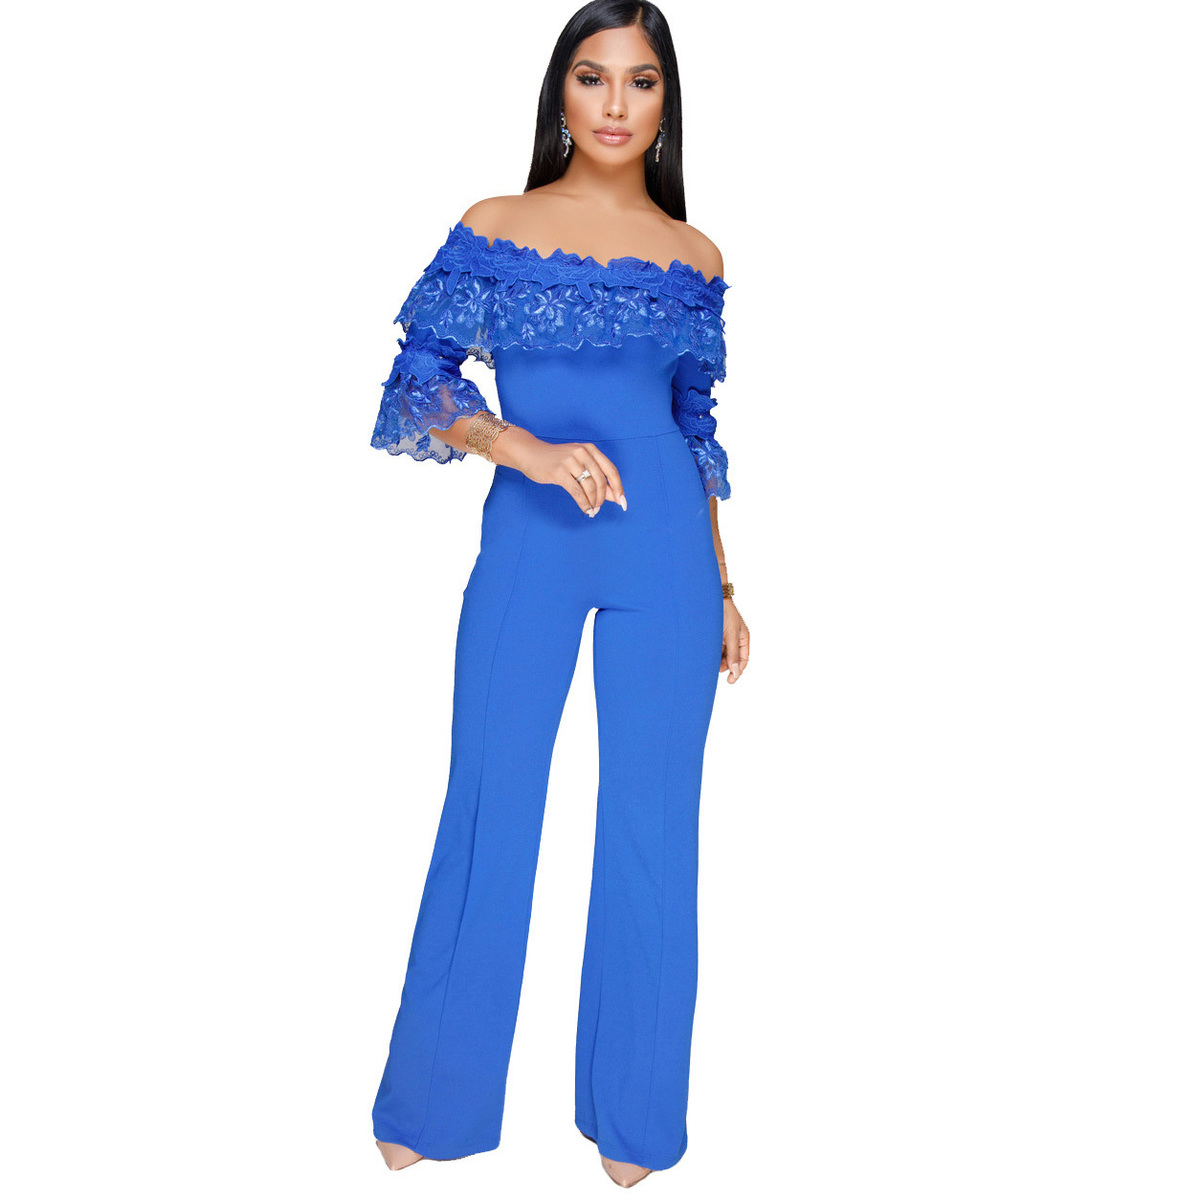 Plus Size Casual Women Jumpsuit Off Shoulder Lace Ruffles Sexy Party Rompers Womens Loose Jumpsuit Long Pants Women Overalls